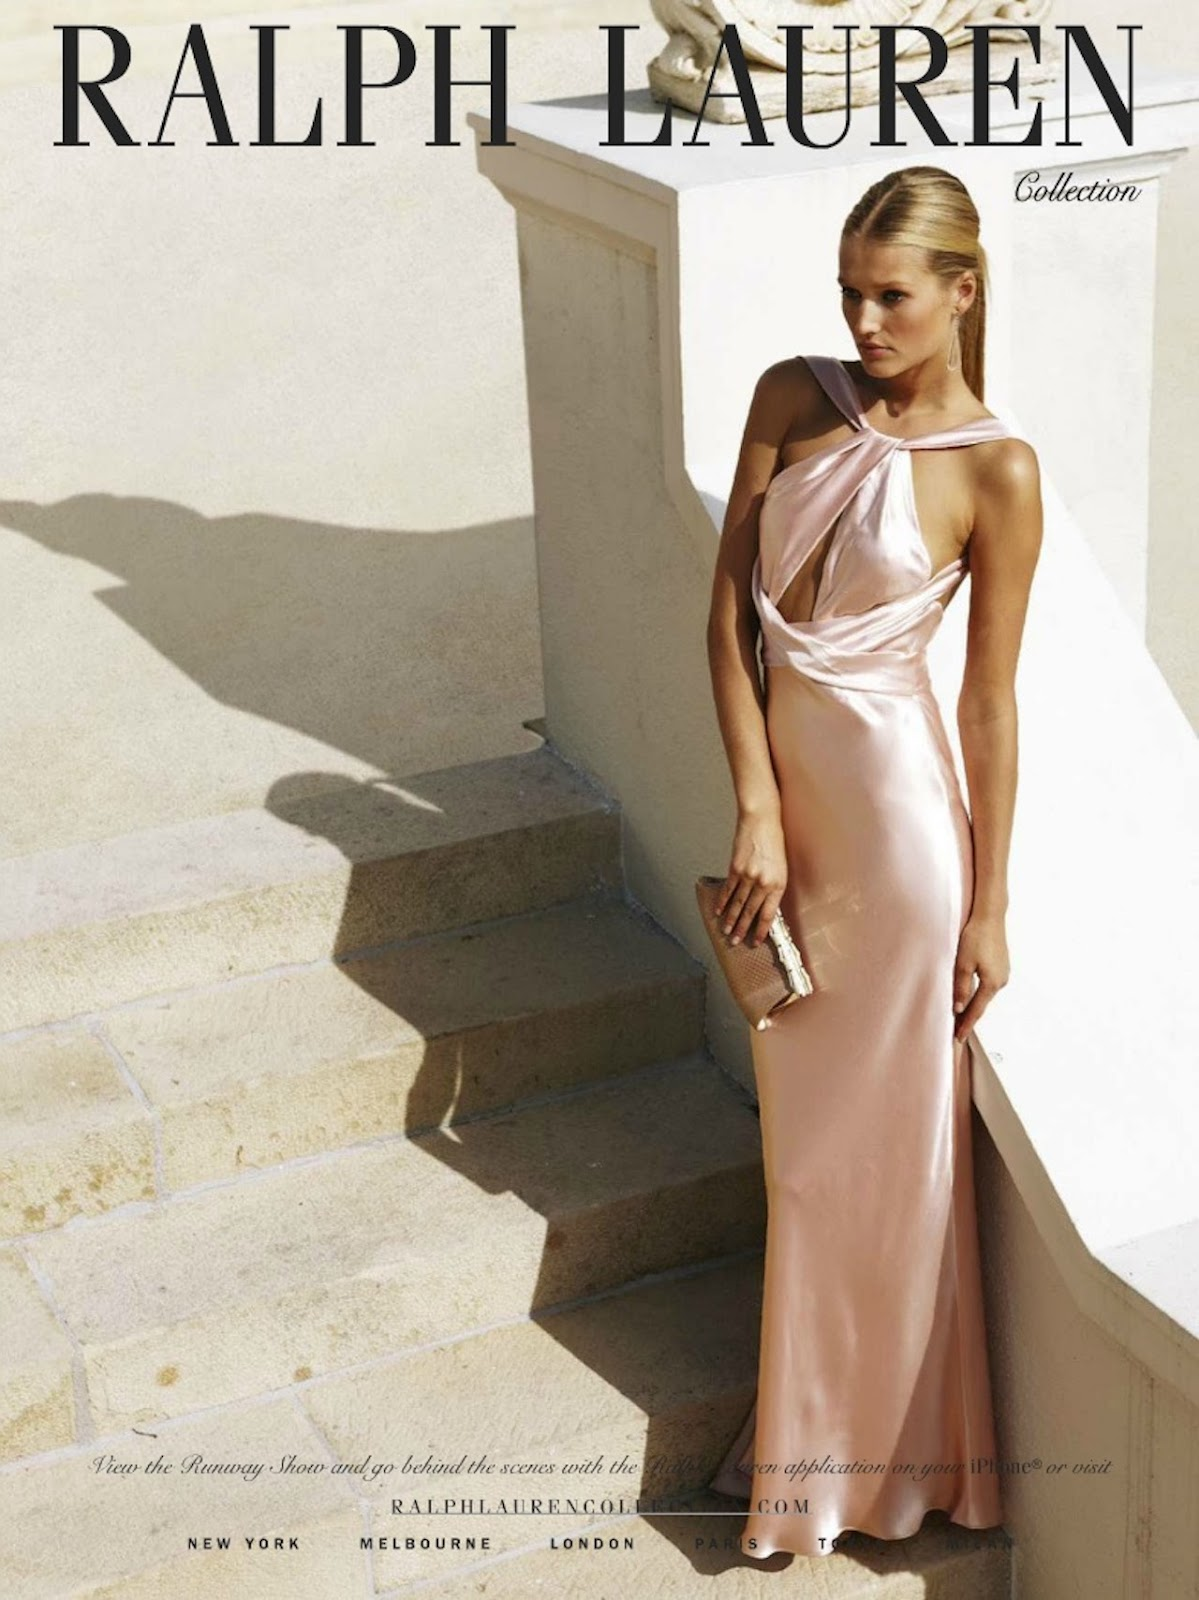 http://1.bp.blogspot.com/-vBtHItOC-vg/Ty1eTDvR2sI/AAAAAAAA9dg/KLXyoiB2jxU/s1600/Screen+shot+2012-02-01+at+6.54.17+AM.jpg